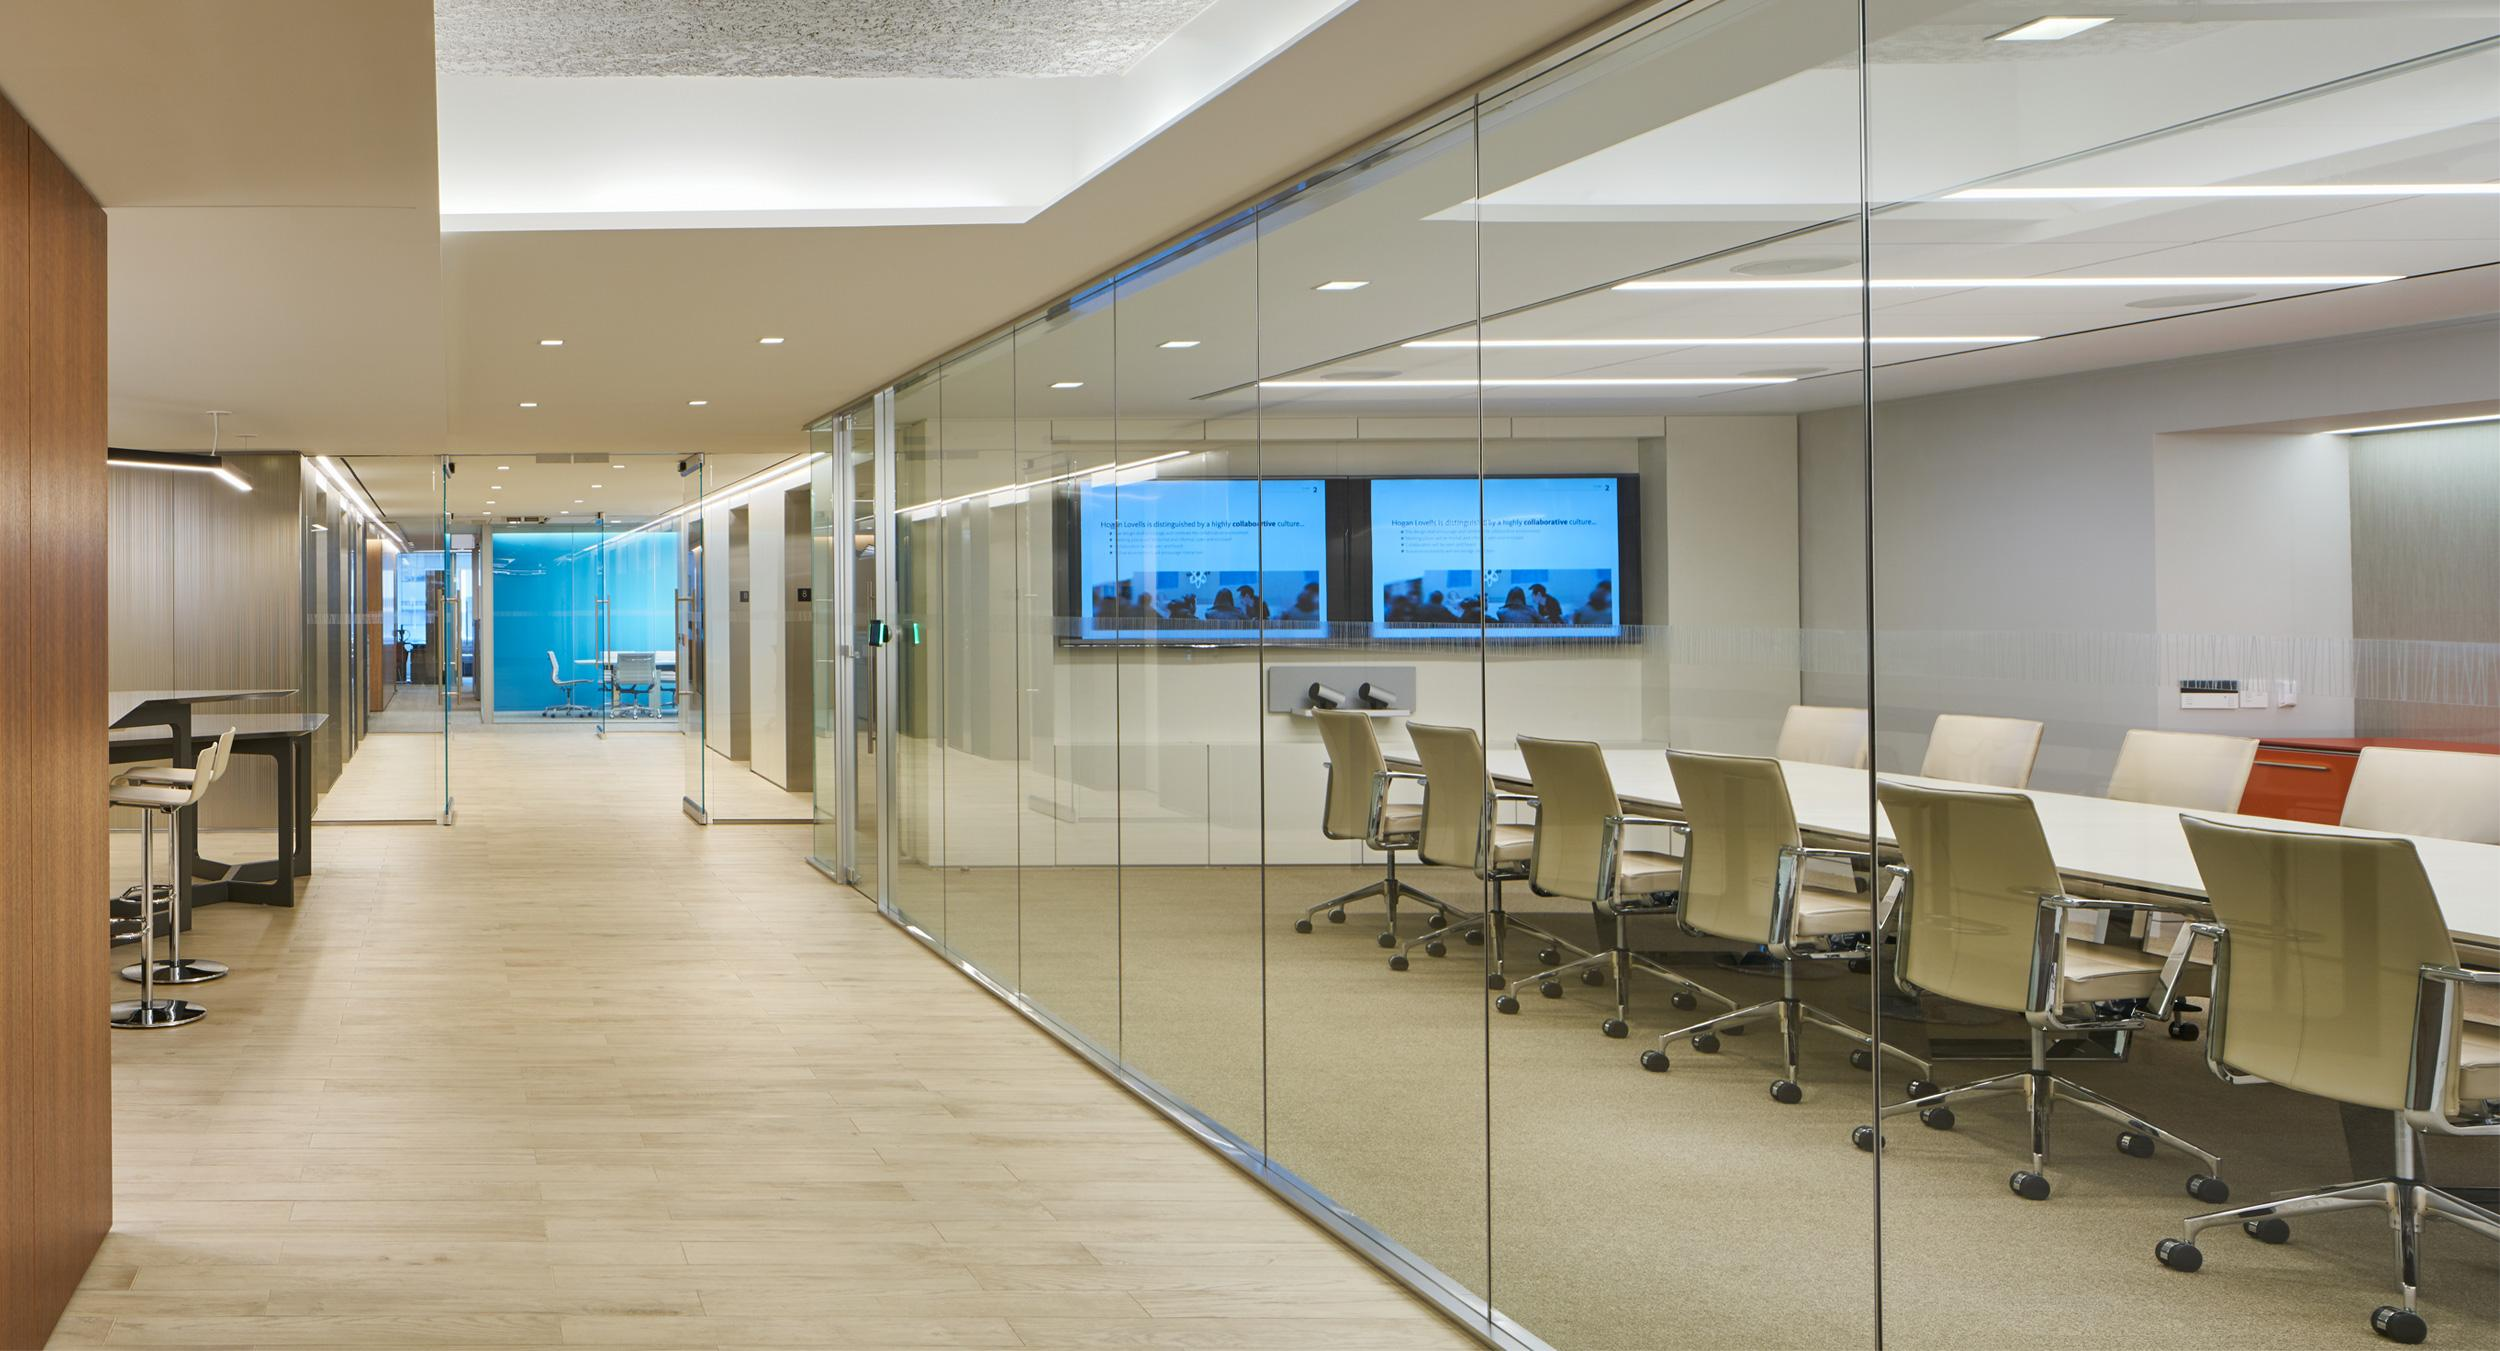 Hogan's conference center features MESA tables and custom-tailored storage credenzas.